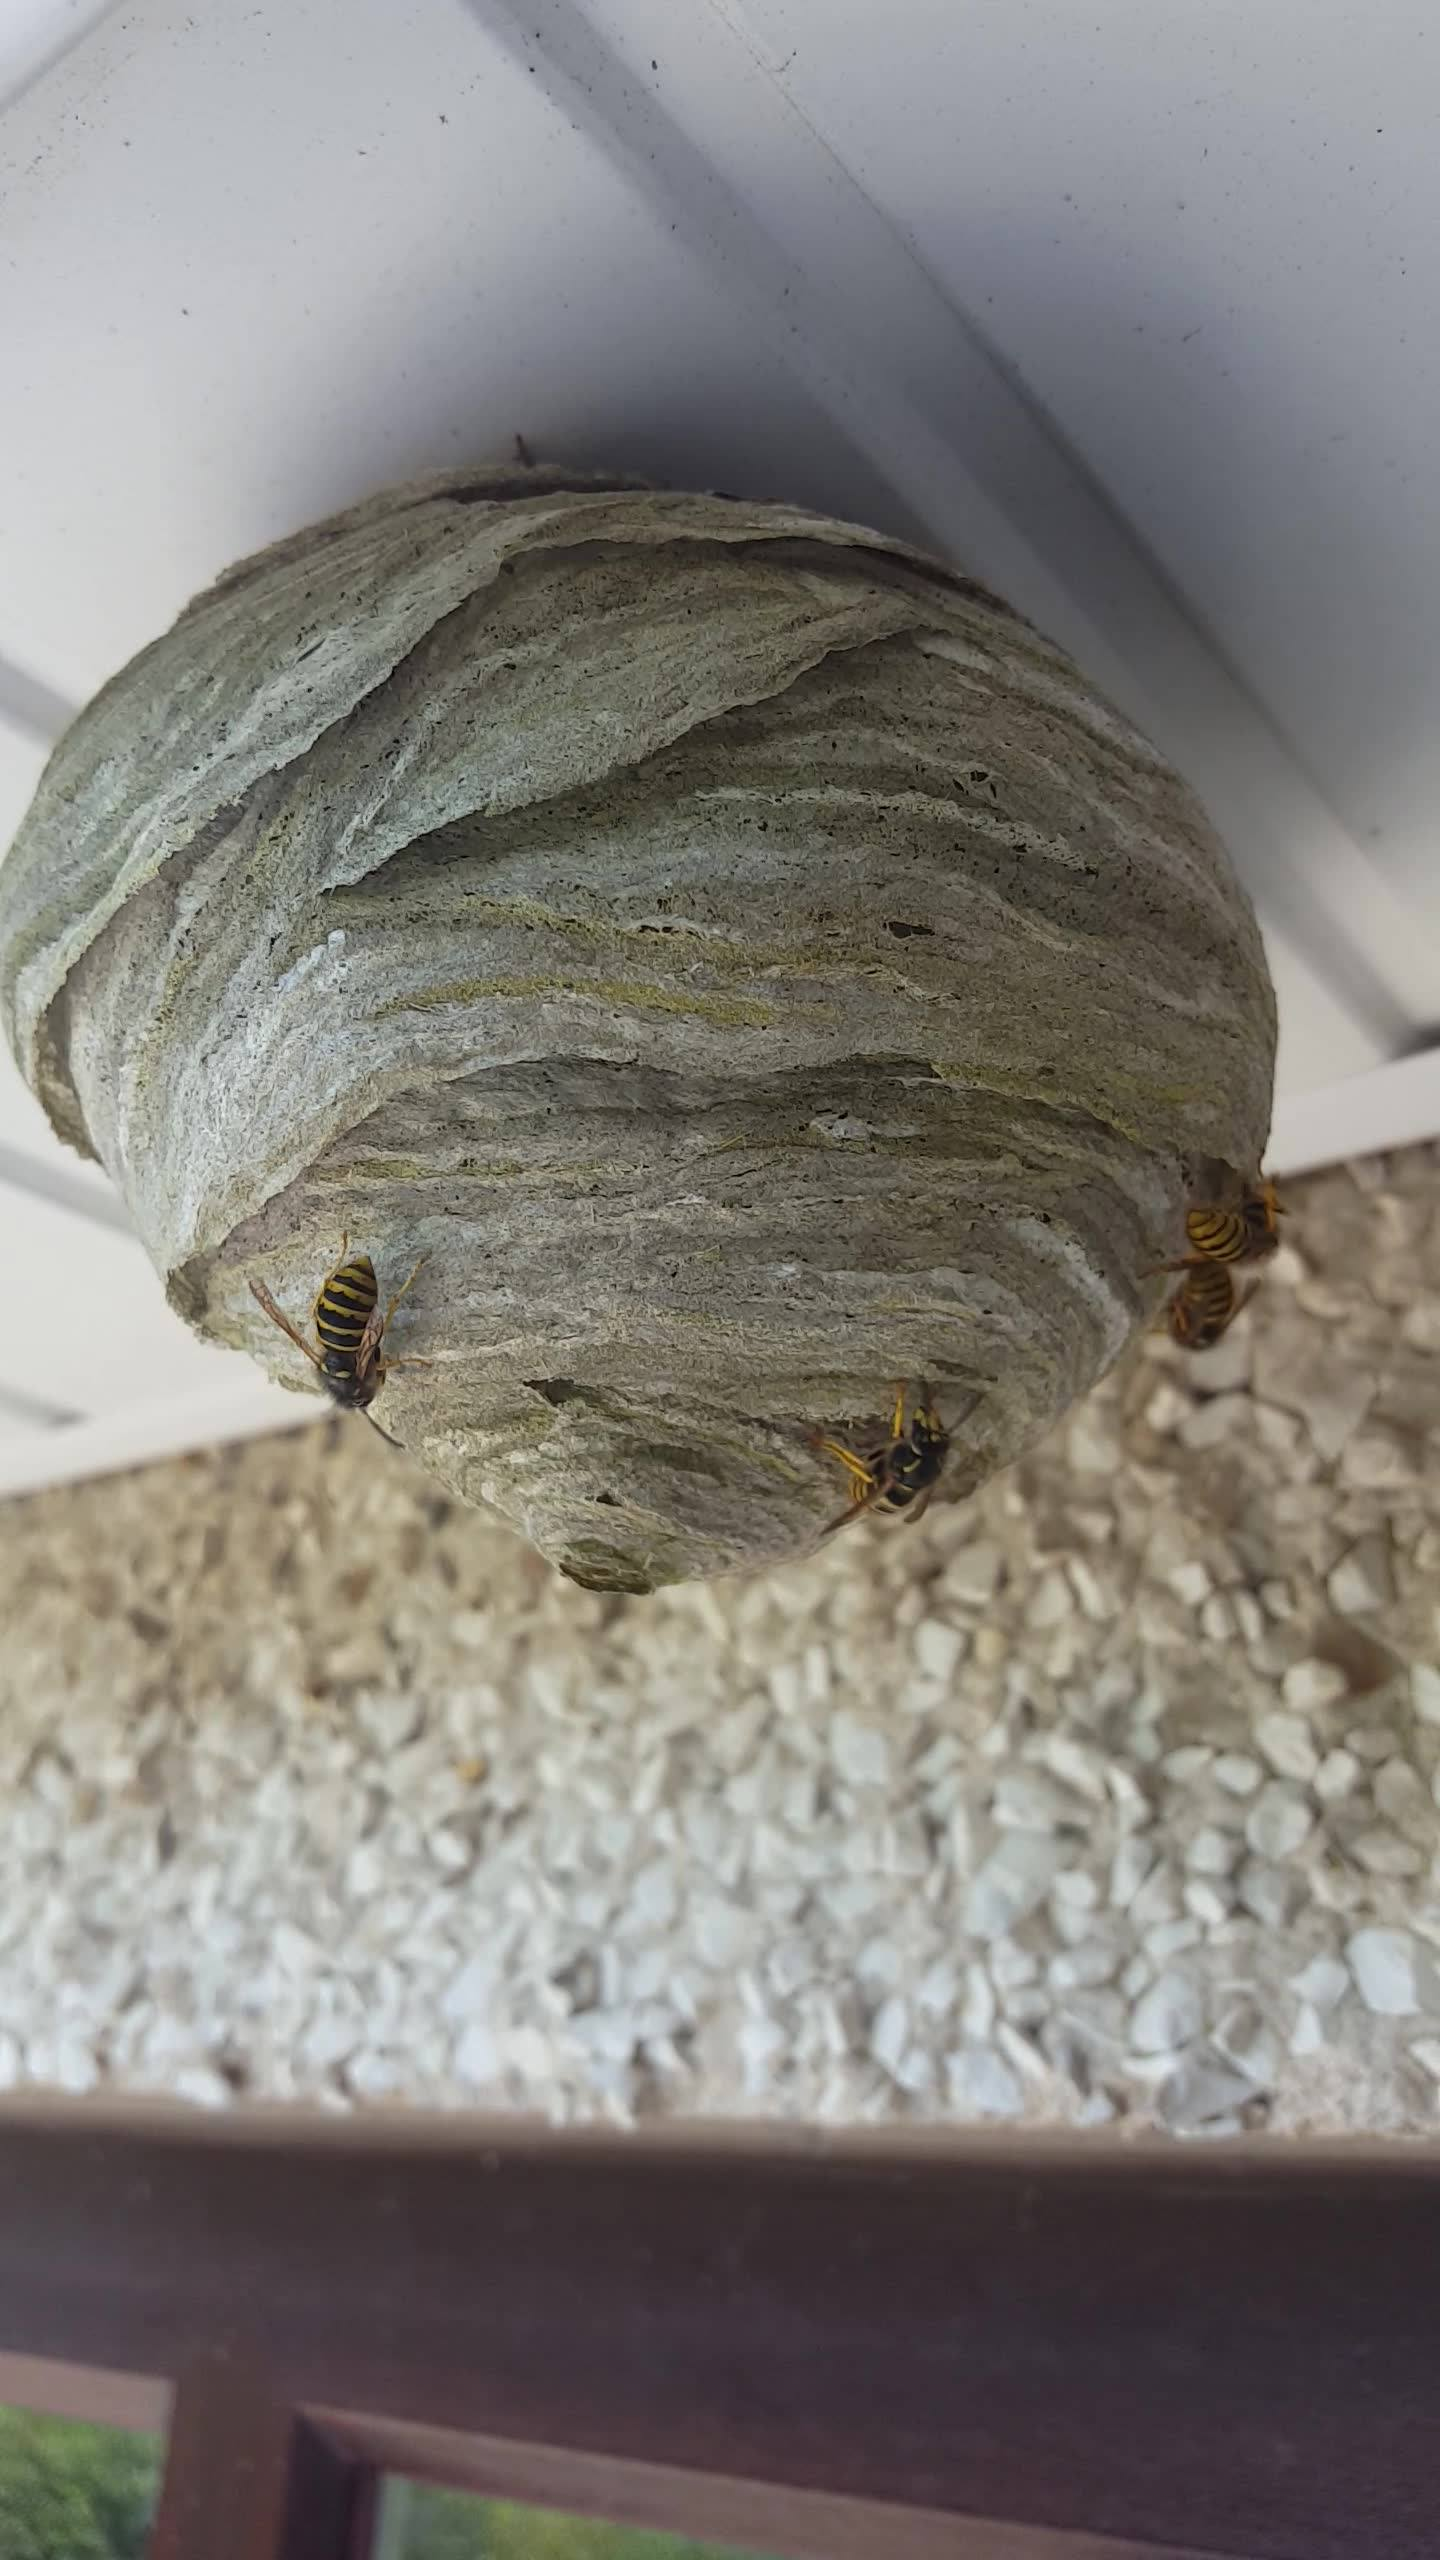 Wasp nest removal Same day service Pm or call 07759068929 Like and share plz